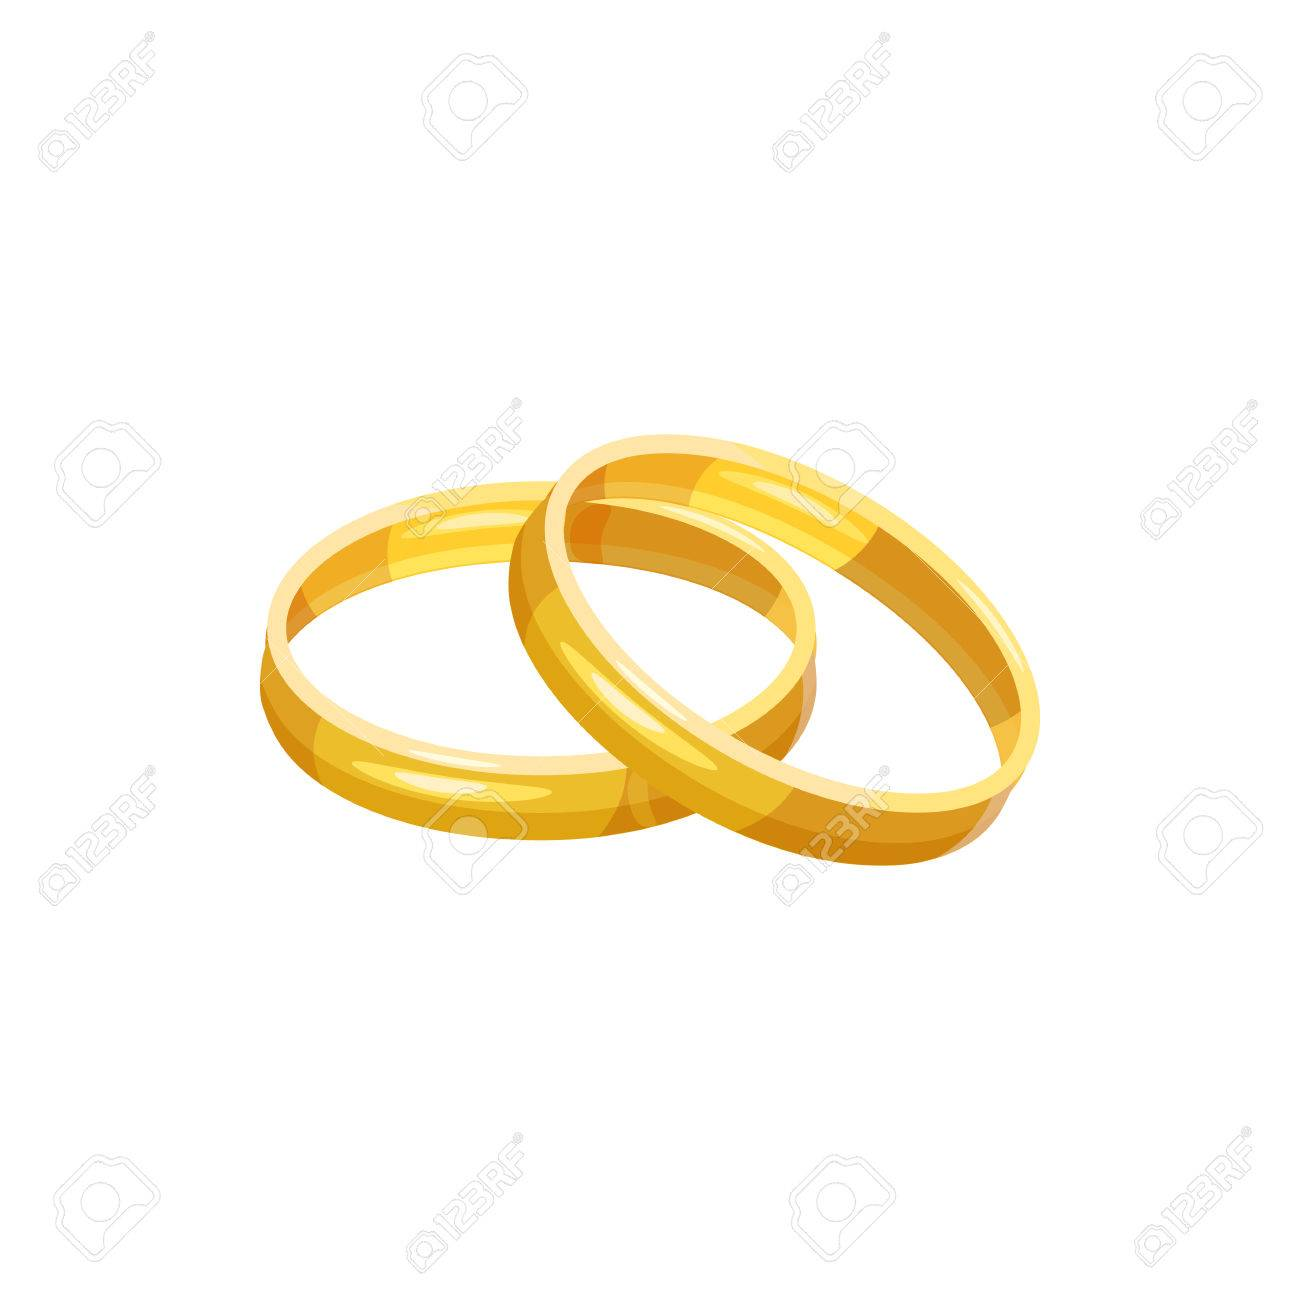 Wedding Rings Icon In Cartoon Style On A White Background Royalty